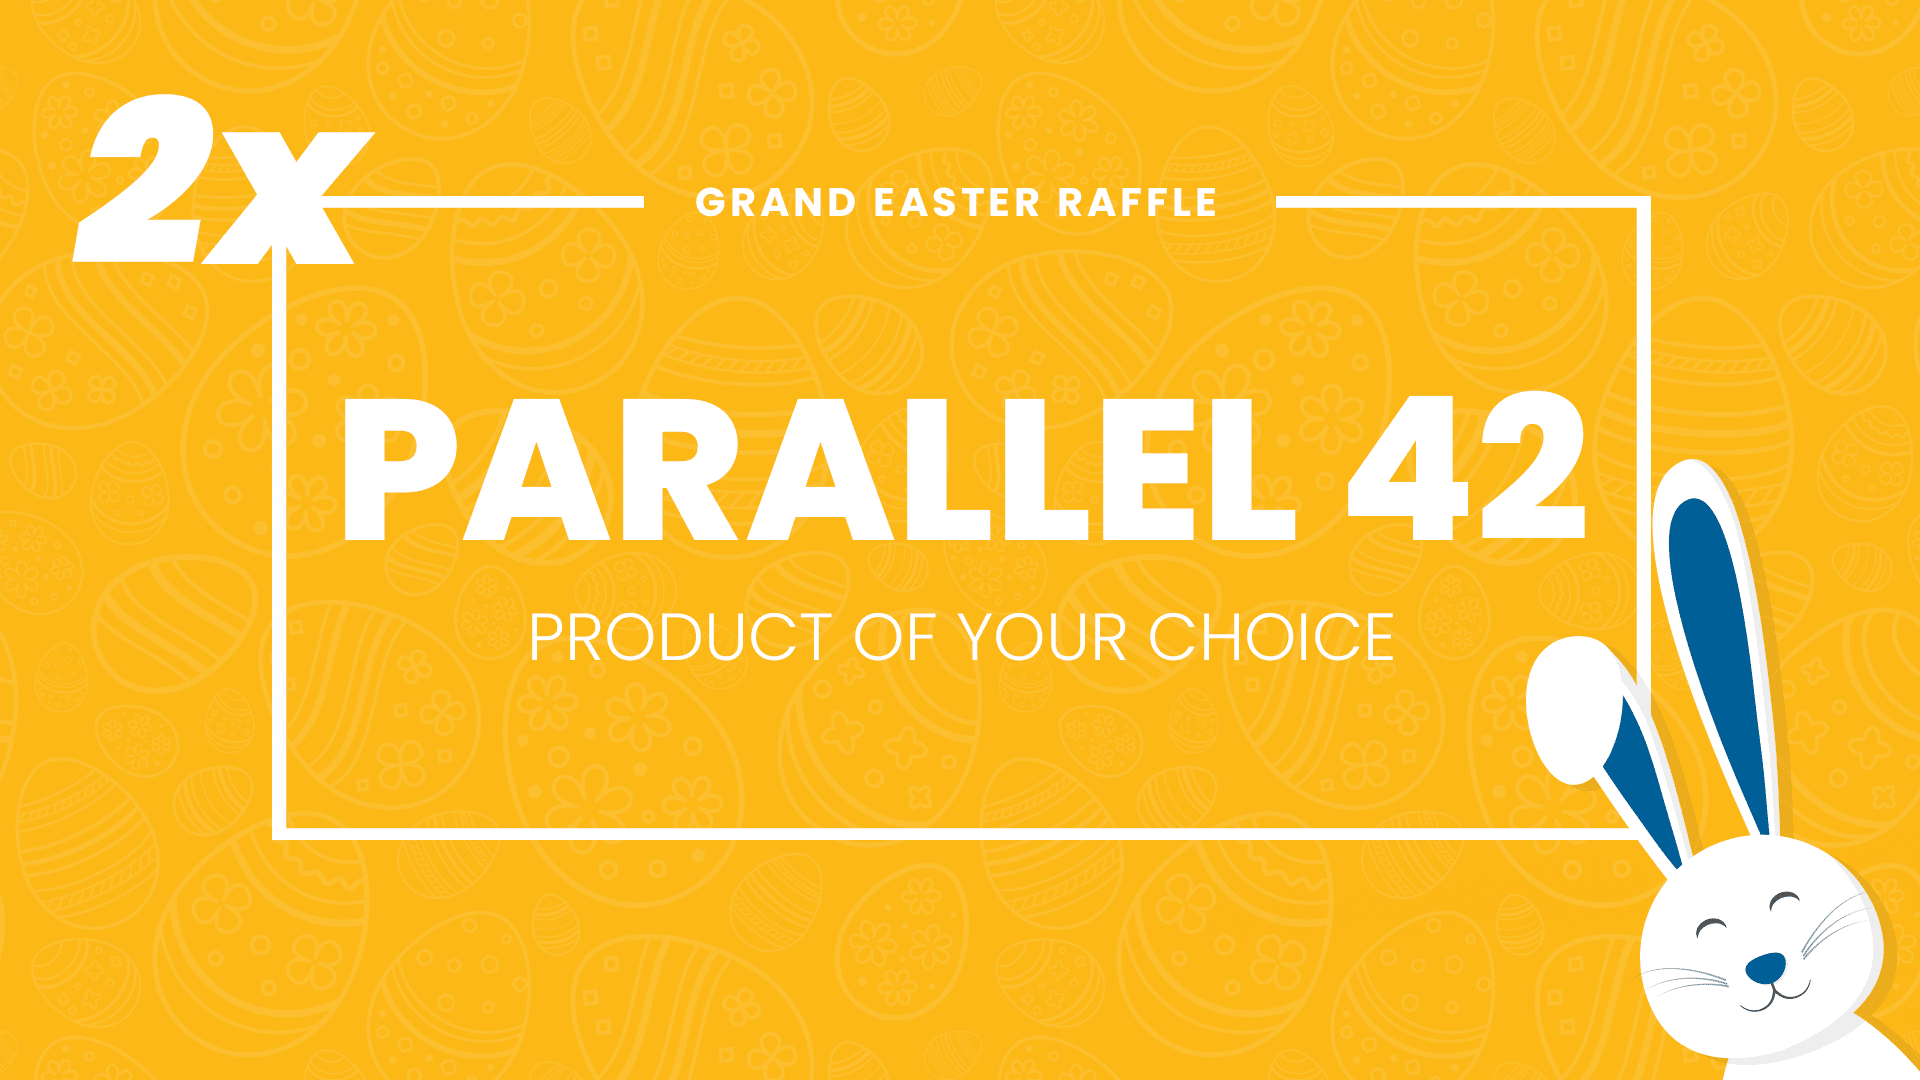 Parallel 42